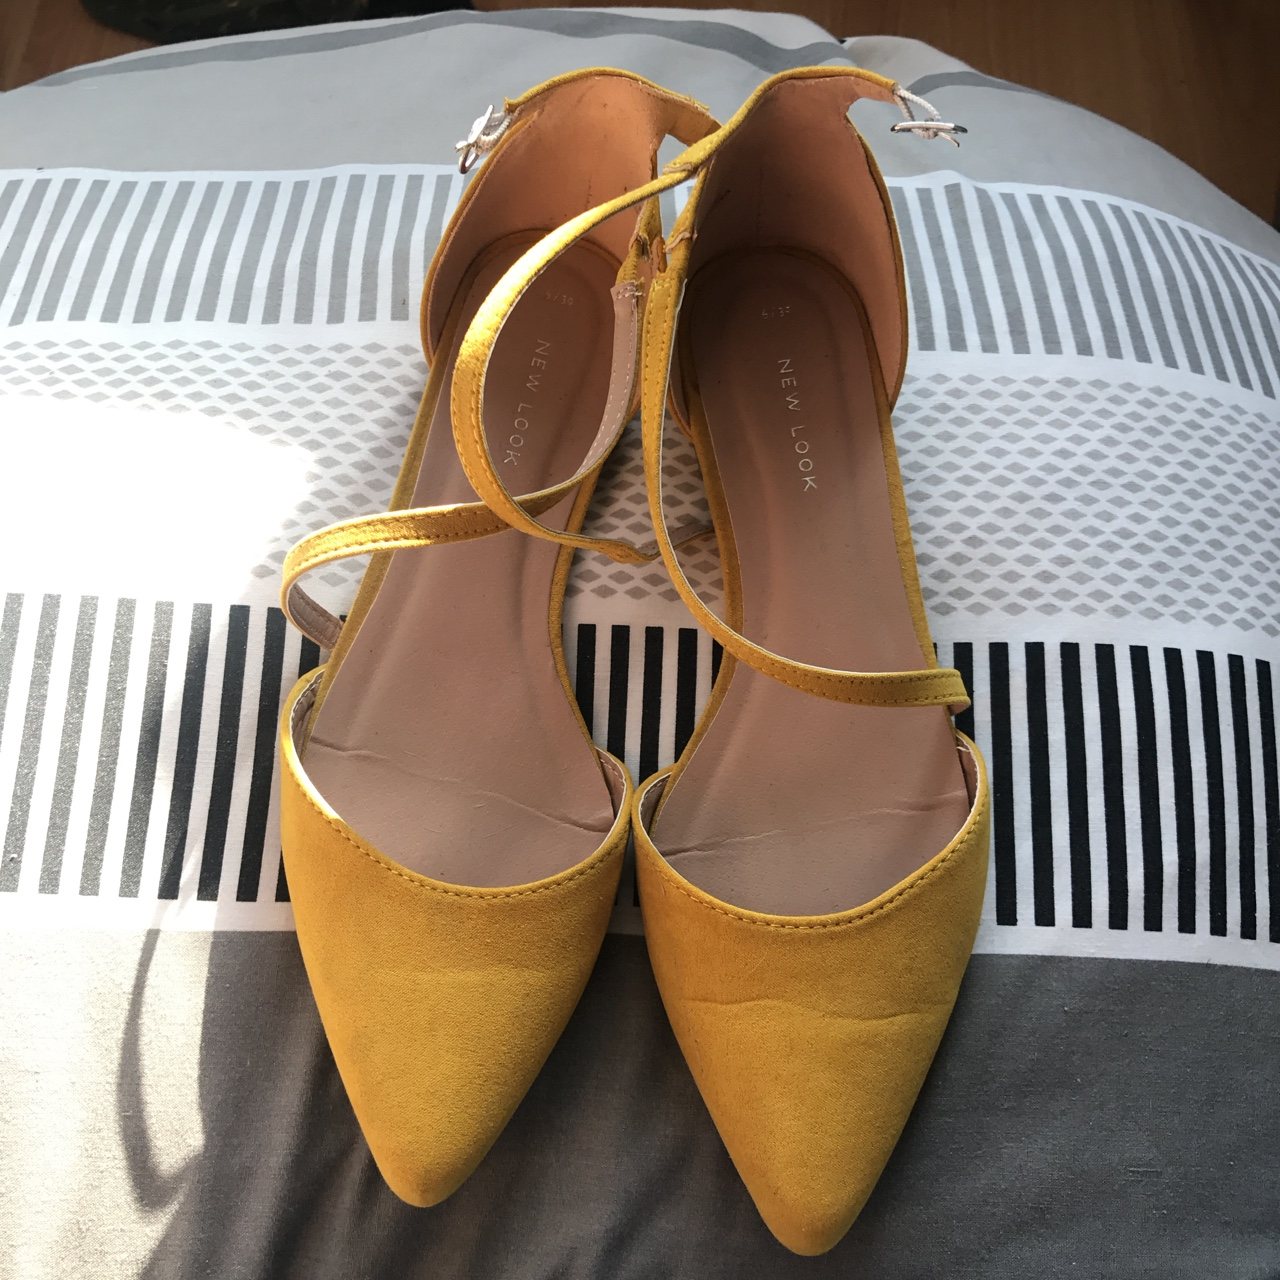 New look shoes, mustard colour yellow